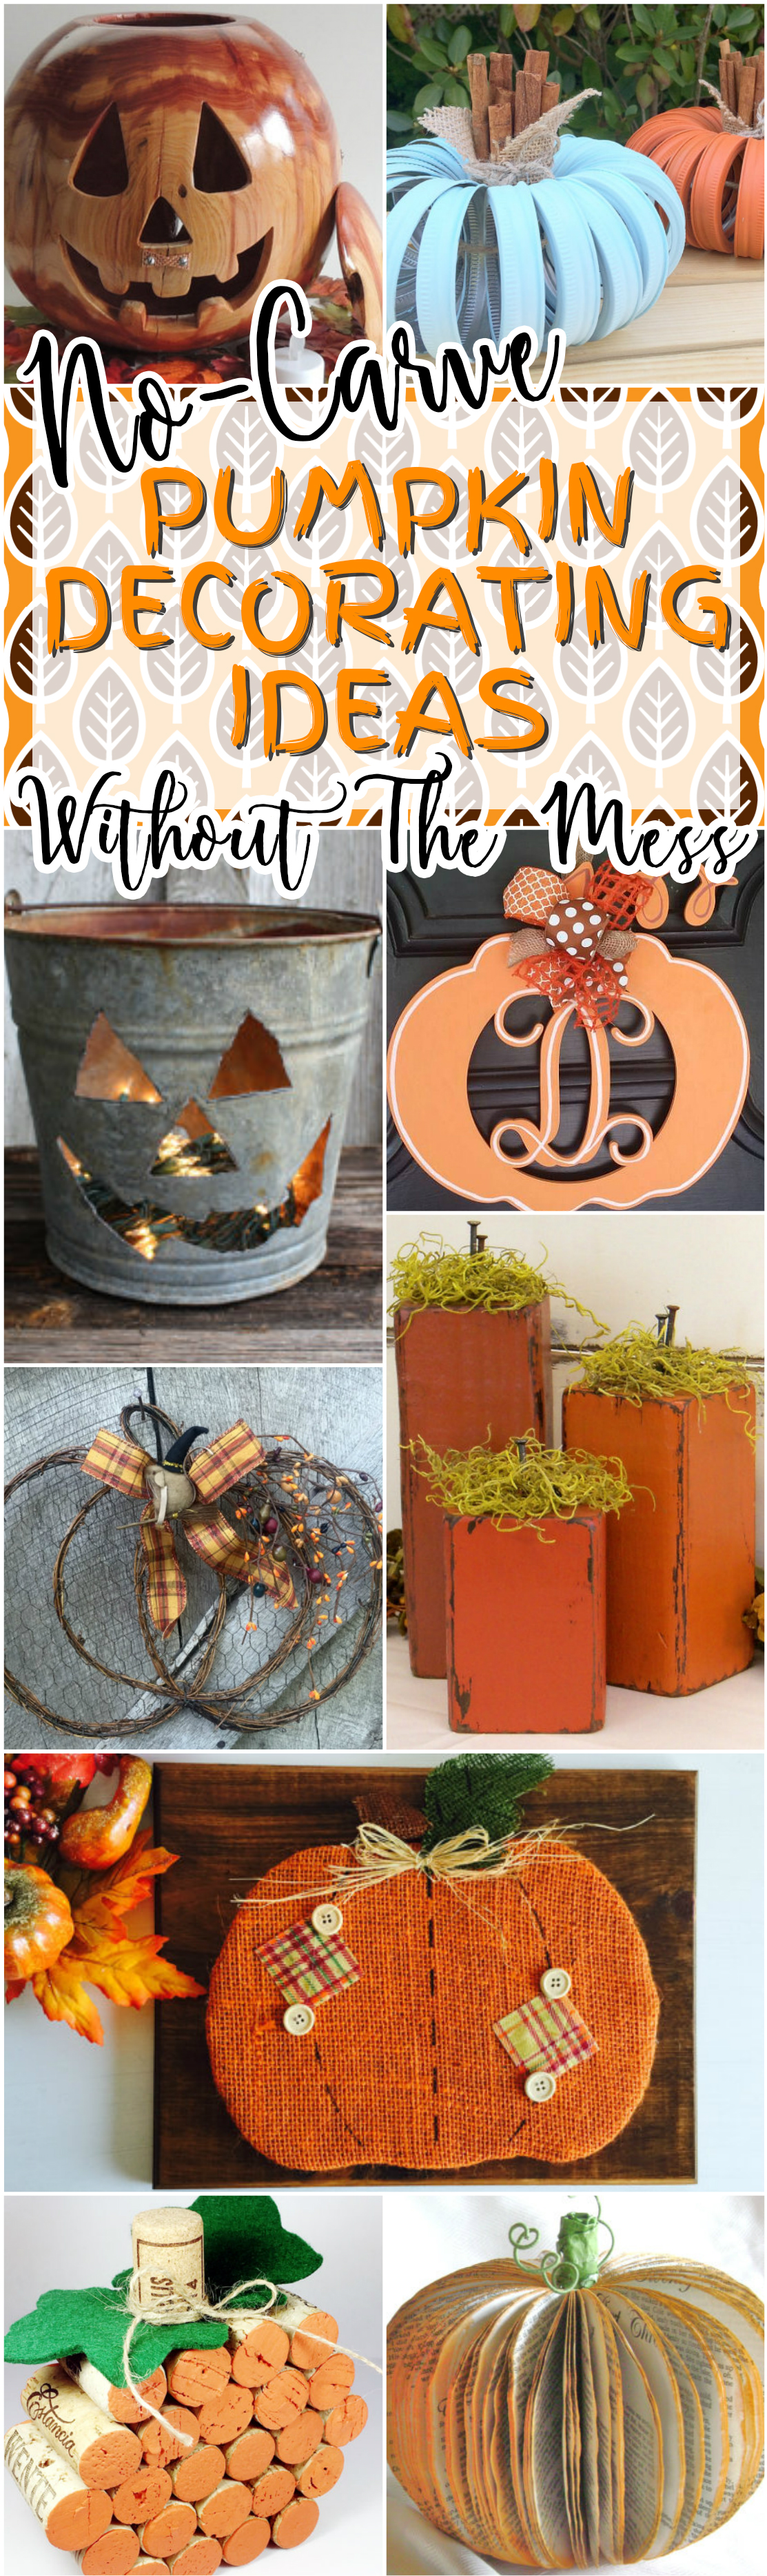 23 Adorable Pumpkin Decorating Ideas Without Carving And ...